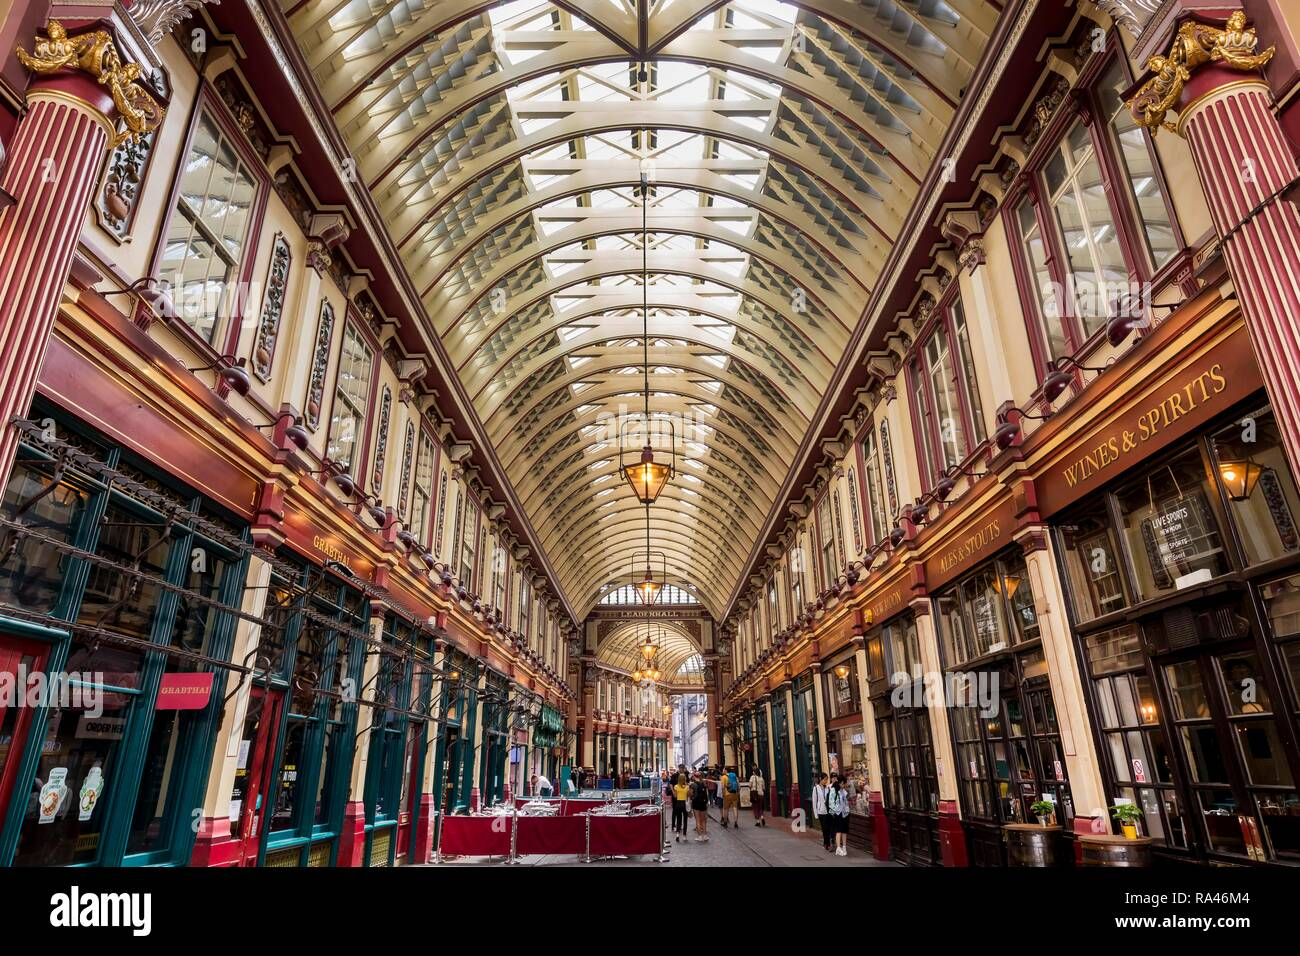 Shopping arcade Leadenhall Market in the financial district, London, United Kingdom - Stock Image